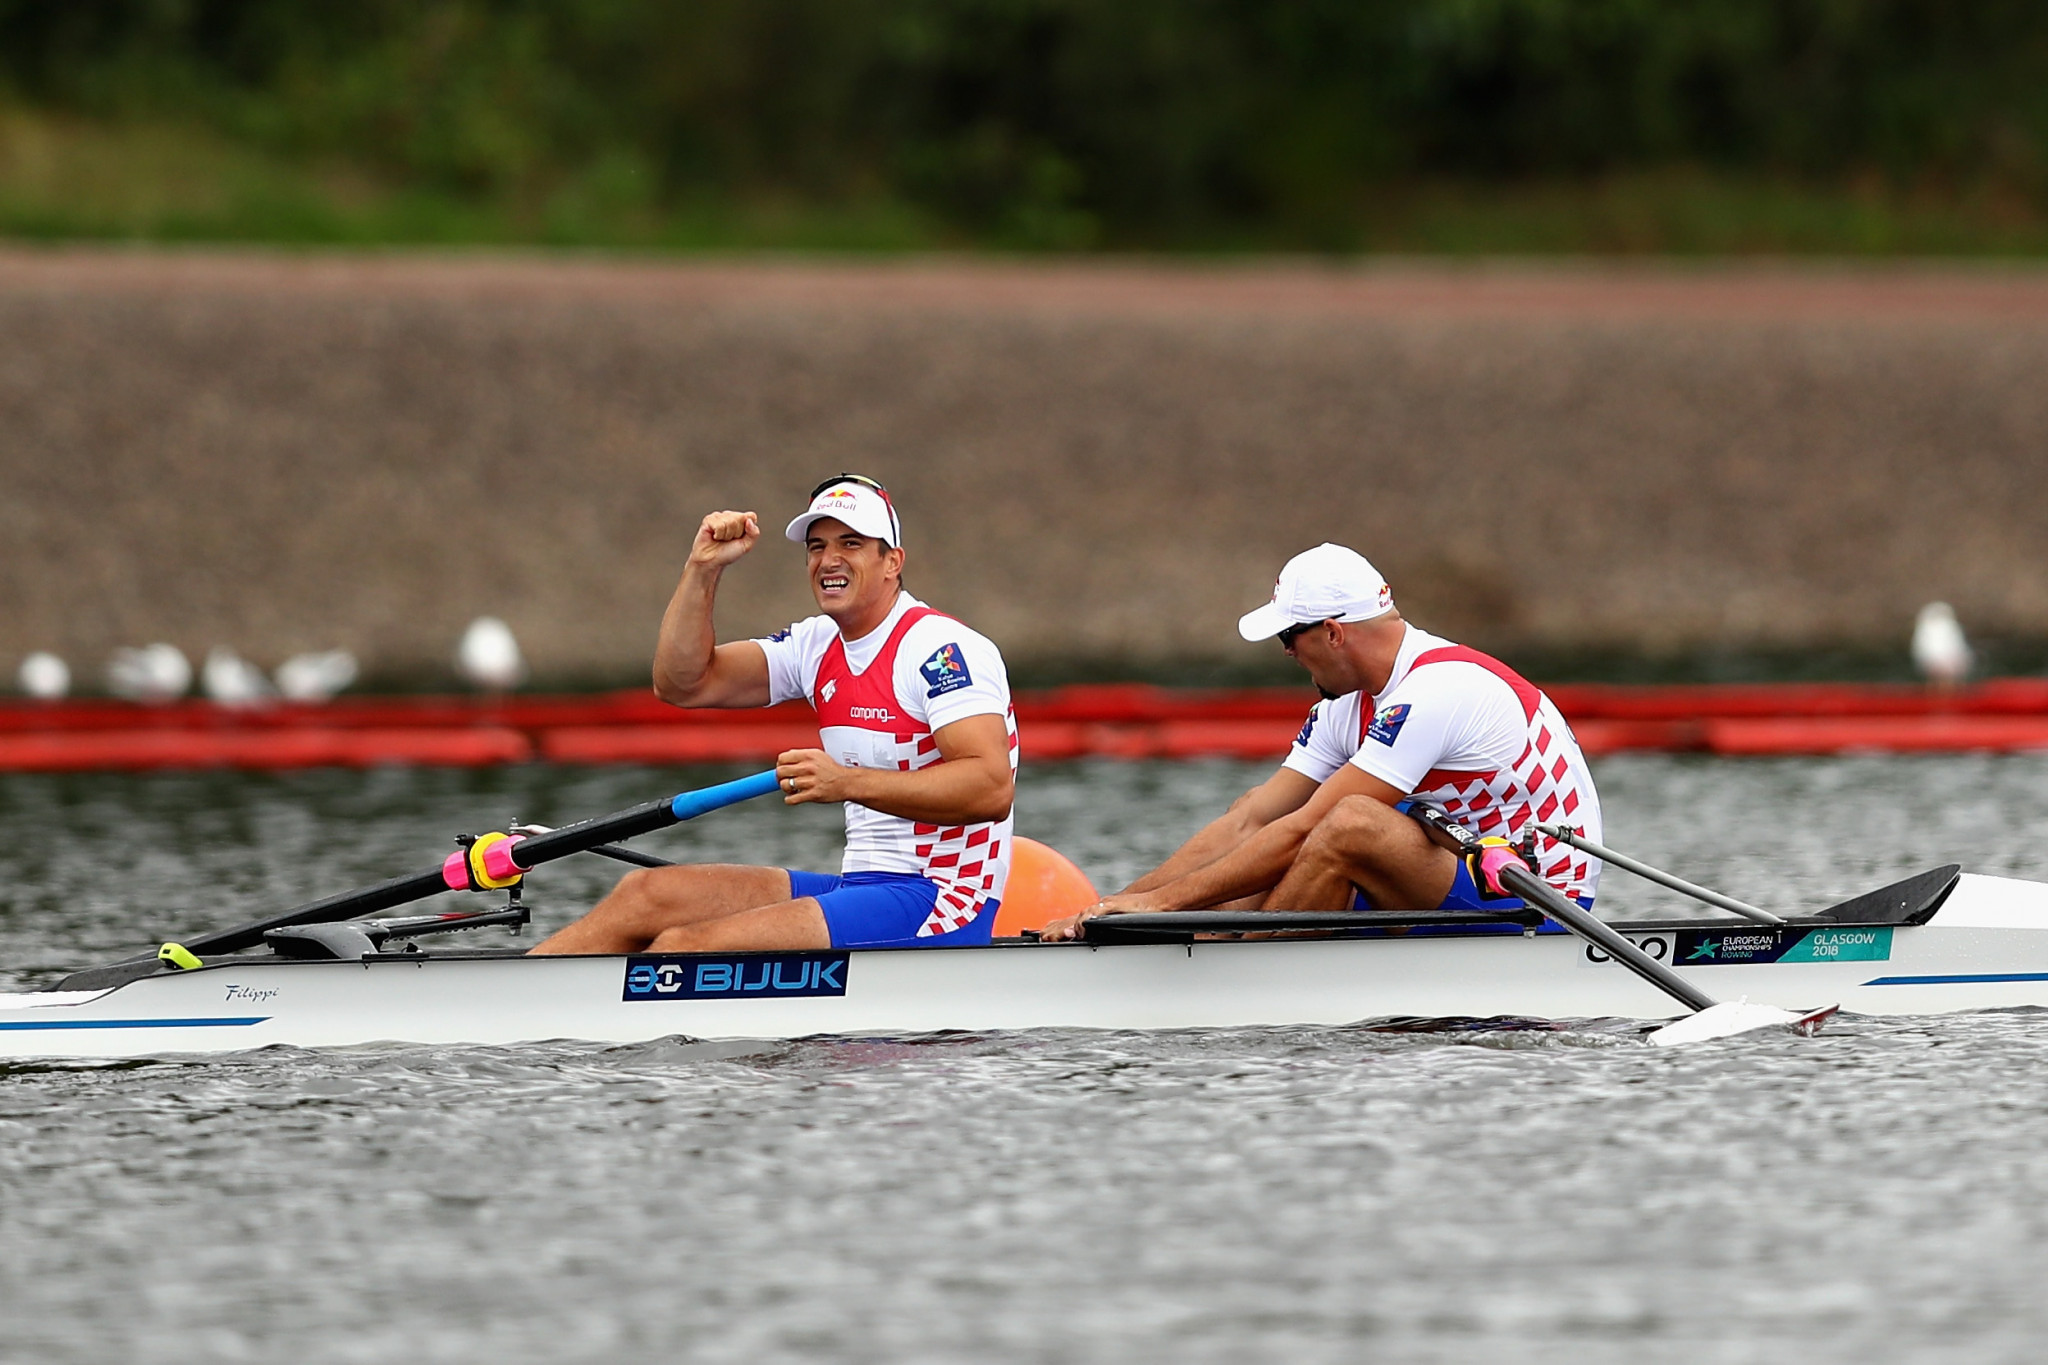 Croatia's Martin and Sinković brothers set to impress at opening 2019 World Rowing Cup in Plovdiv